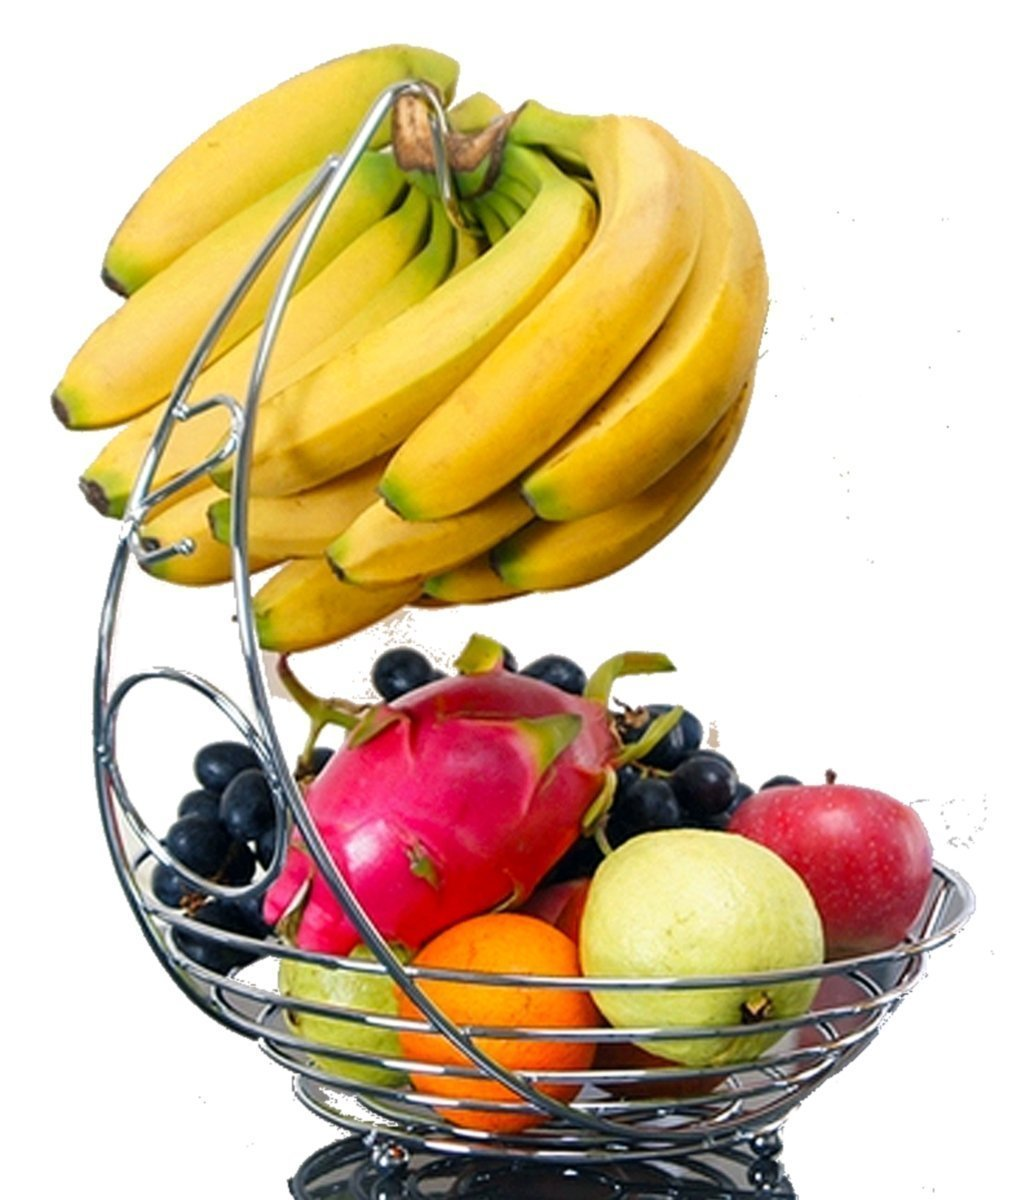 BeautyBuddys Fruit Basket with Banana Holder, Chrome Metal Wire Hanger, 14.76 Tall 14.76 Tall FRUITHOLDER1